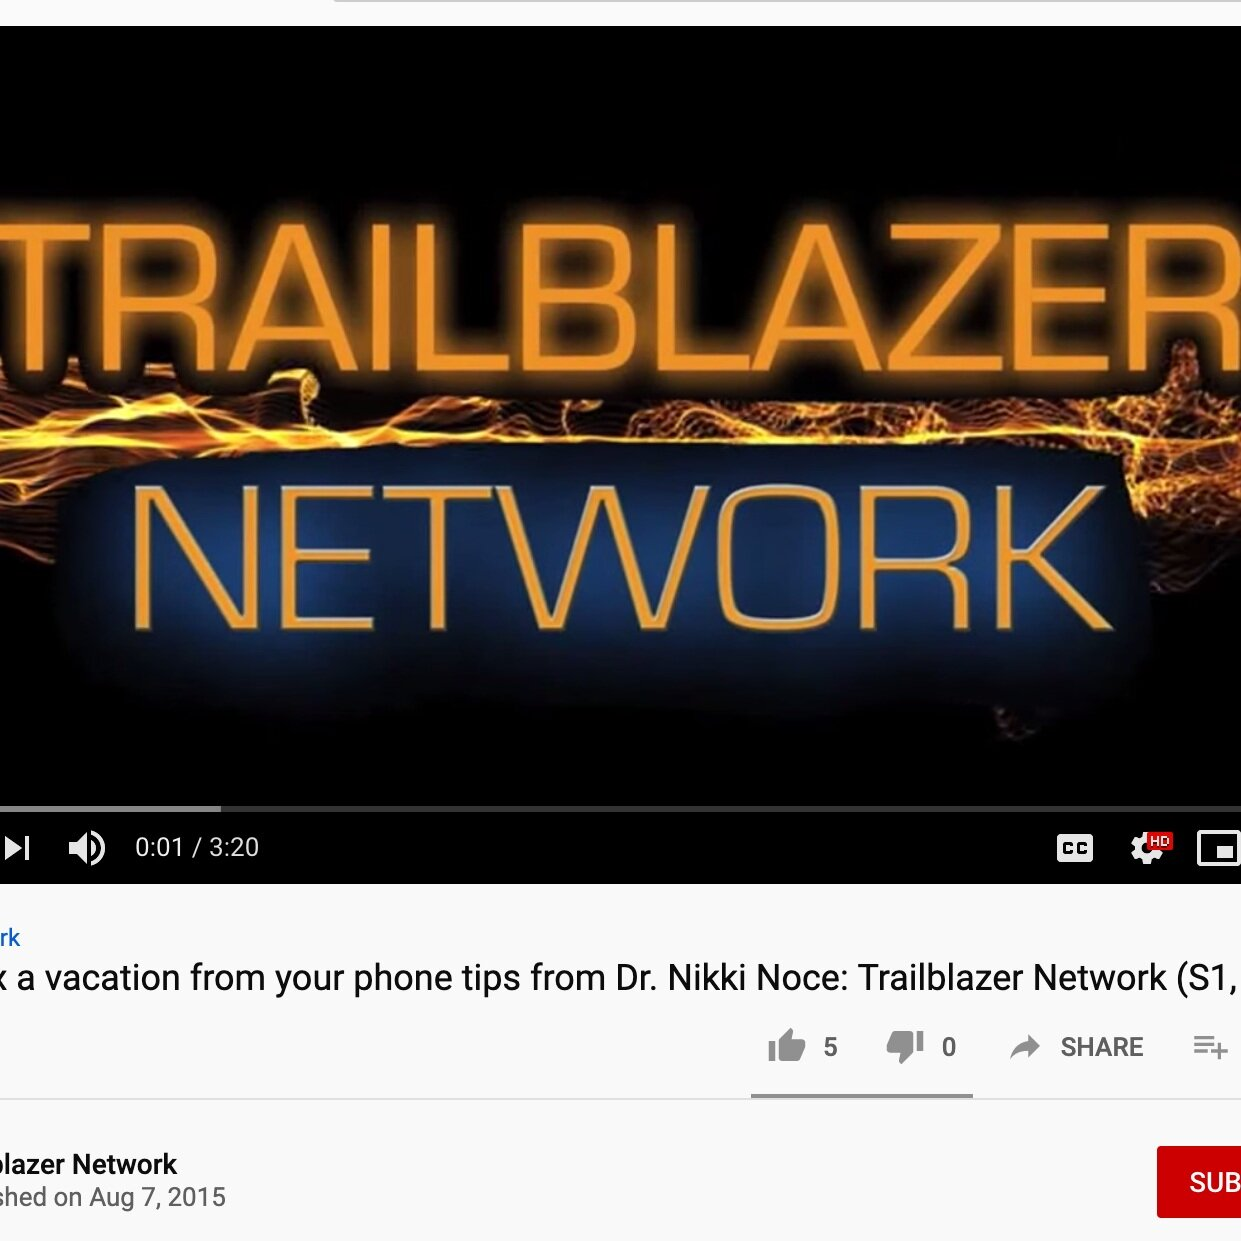 Trailblazer Network - Take a break from your phone and really live your life with the Digital Detox! Dr. Nikki Noce, MD shares her weekly routine to detox from her phone with Digital Lifestyle Expert Sasha Horne. Dr. Nikki Noce is a medical doctor who left western medicine to pursue a career in wellness and prevention. Check out her channel here: https://www.youtube.com/c/drnikkinocemd her website http://www.drnikkinoce.com and on social media @drnikkinoce on Instagram and Twitter!